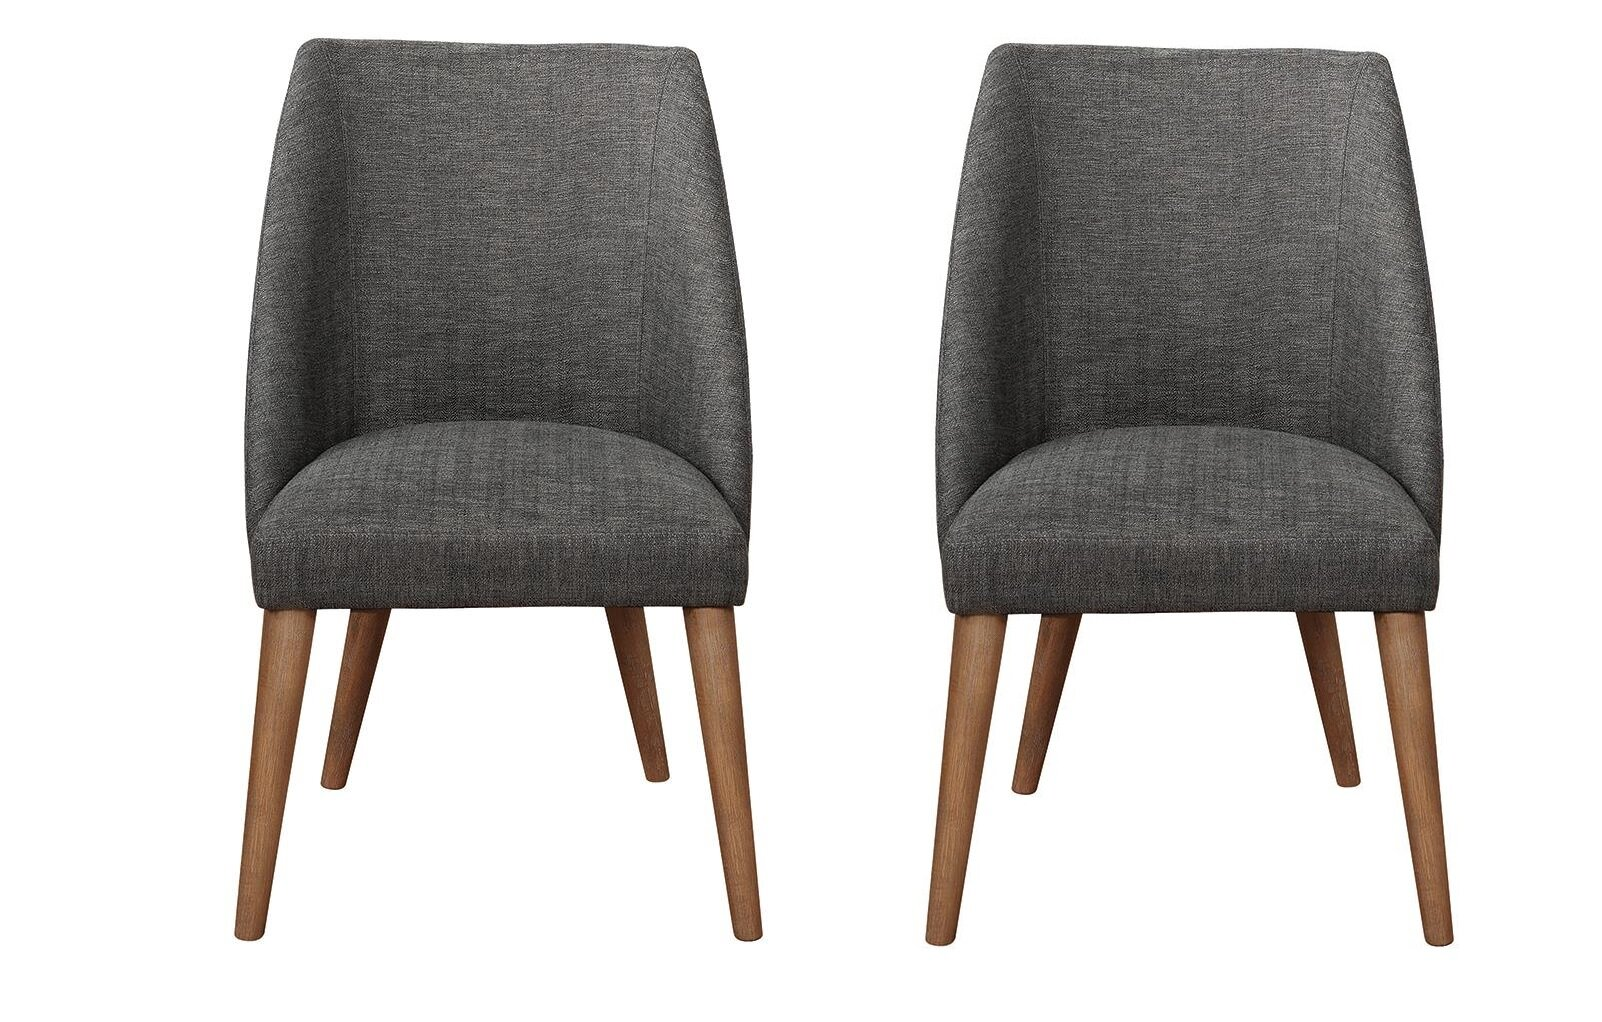 Groovy Dourdain Dining Chairs Dark Grey And Dark Cocoa Set Of 2 Caraccident5 Cool Chair Designs And Ideas Caraccident5Info